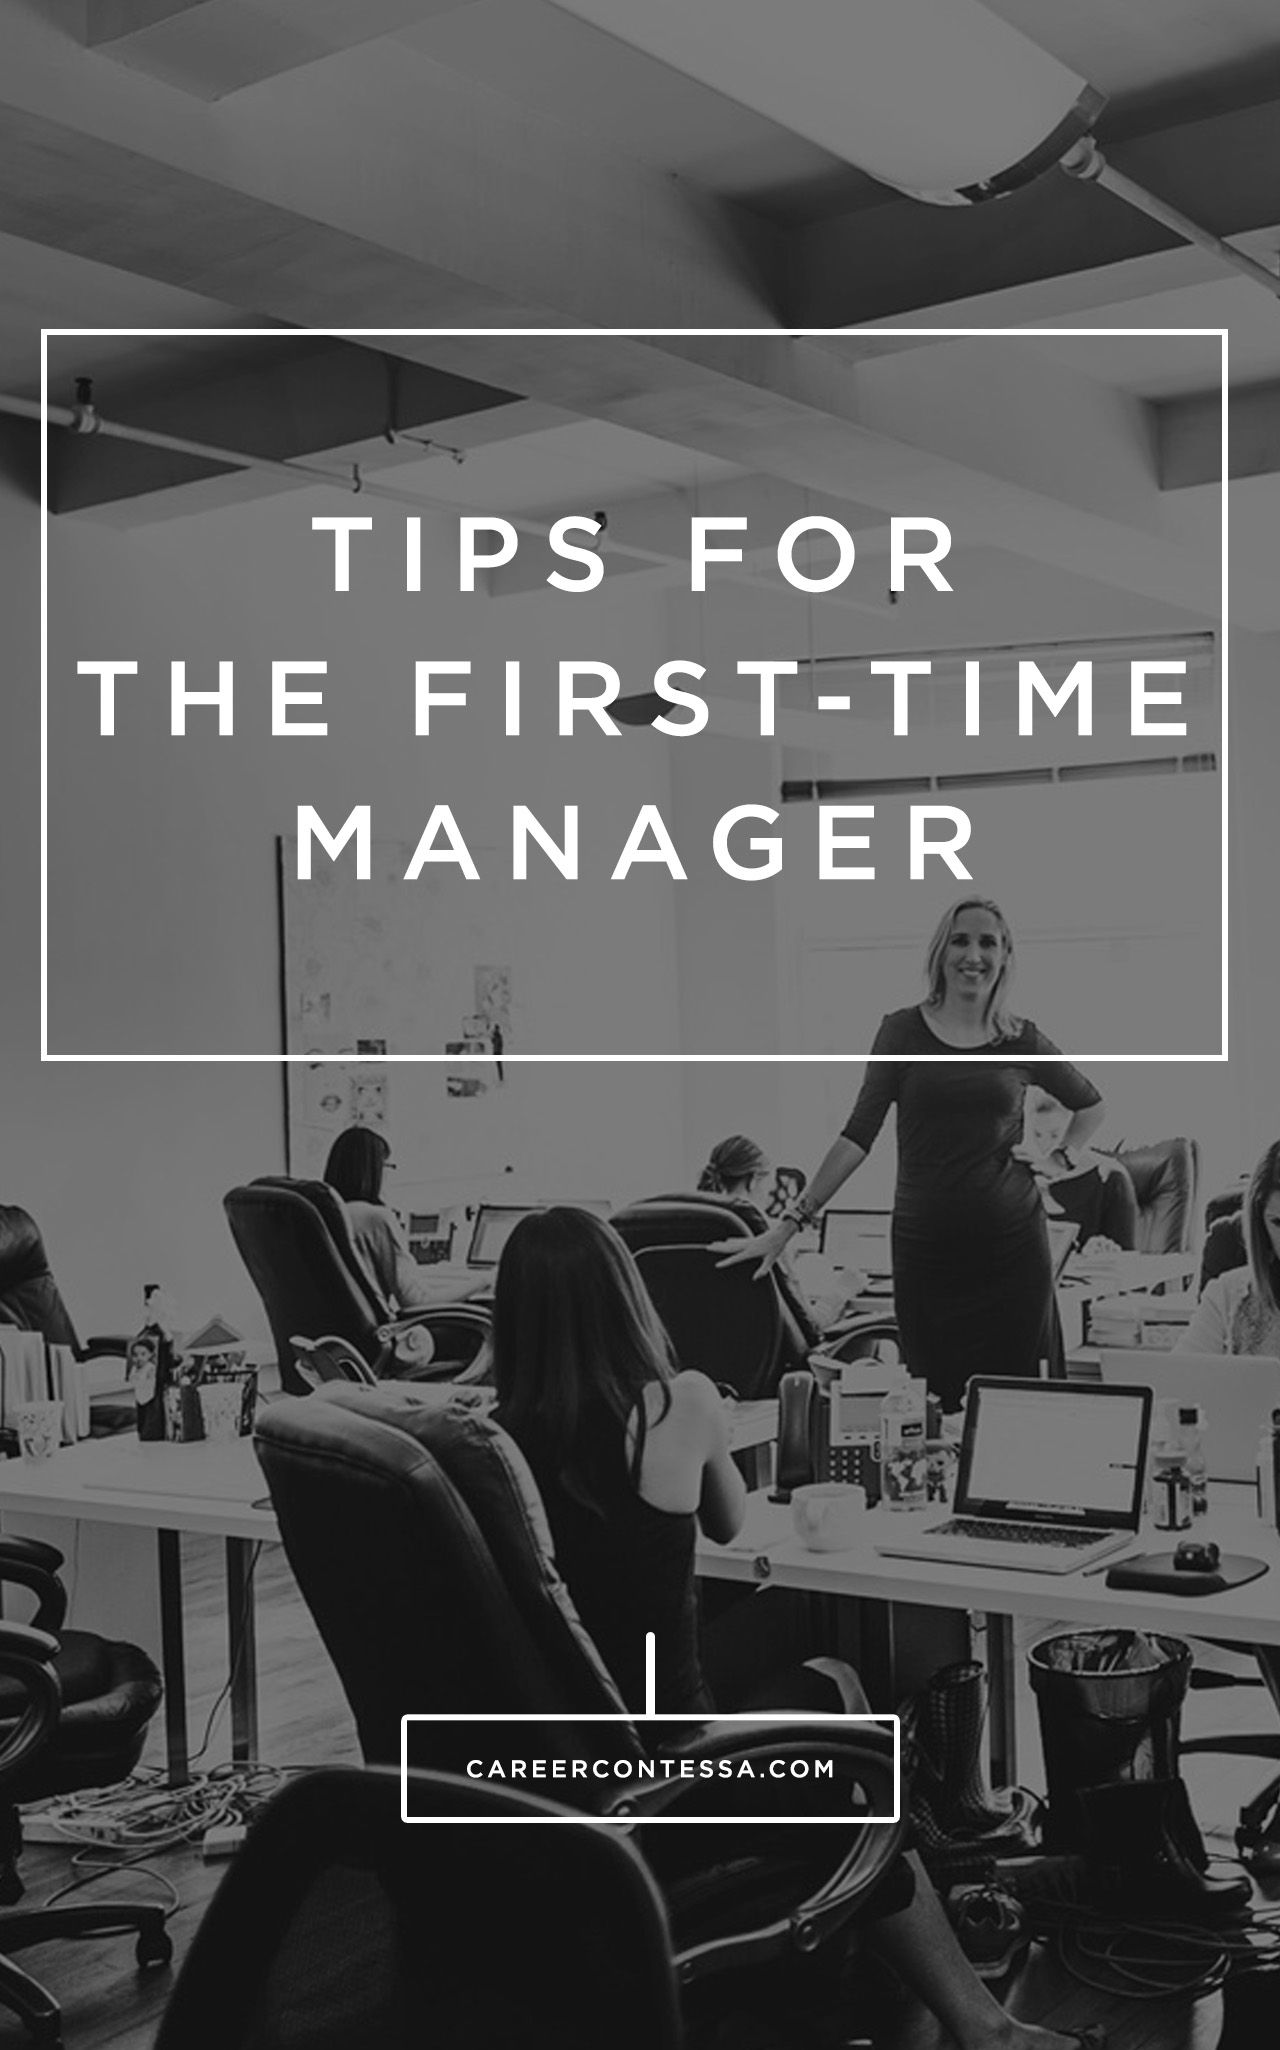 new manager how to effectively organize and lead a team working how to effectively organize and lead a team working w knowledge and offices